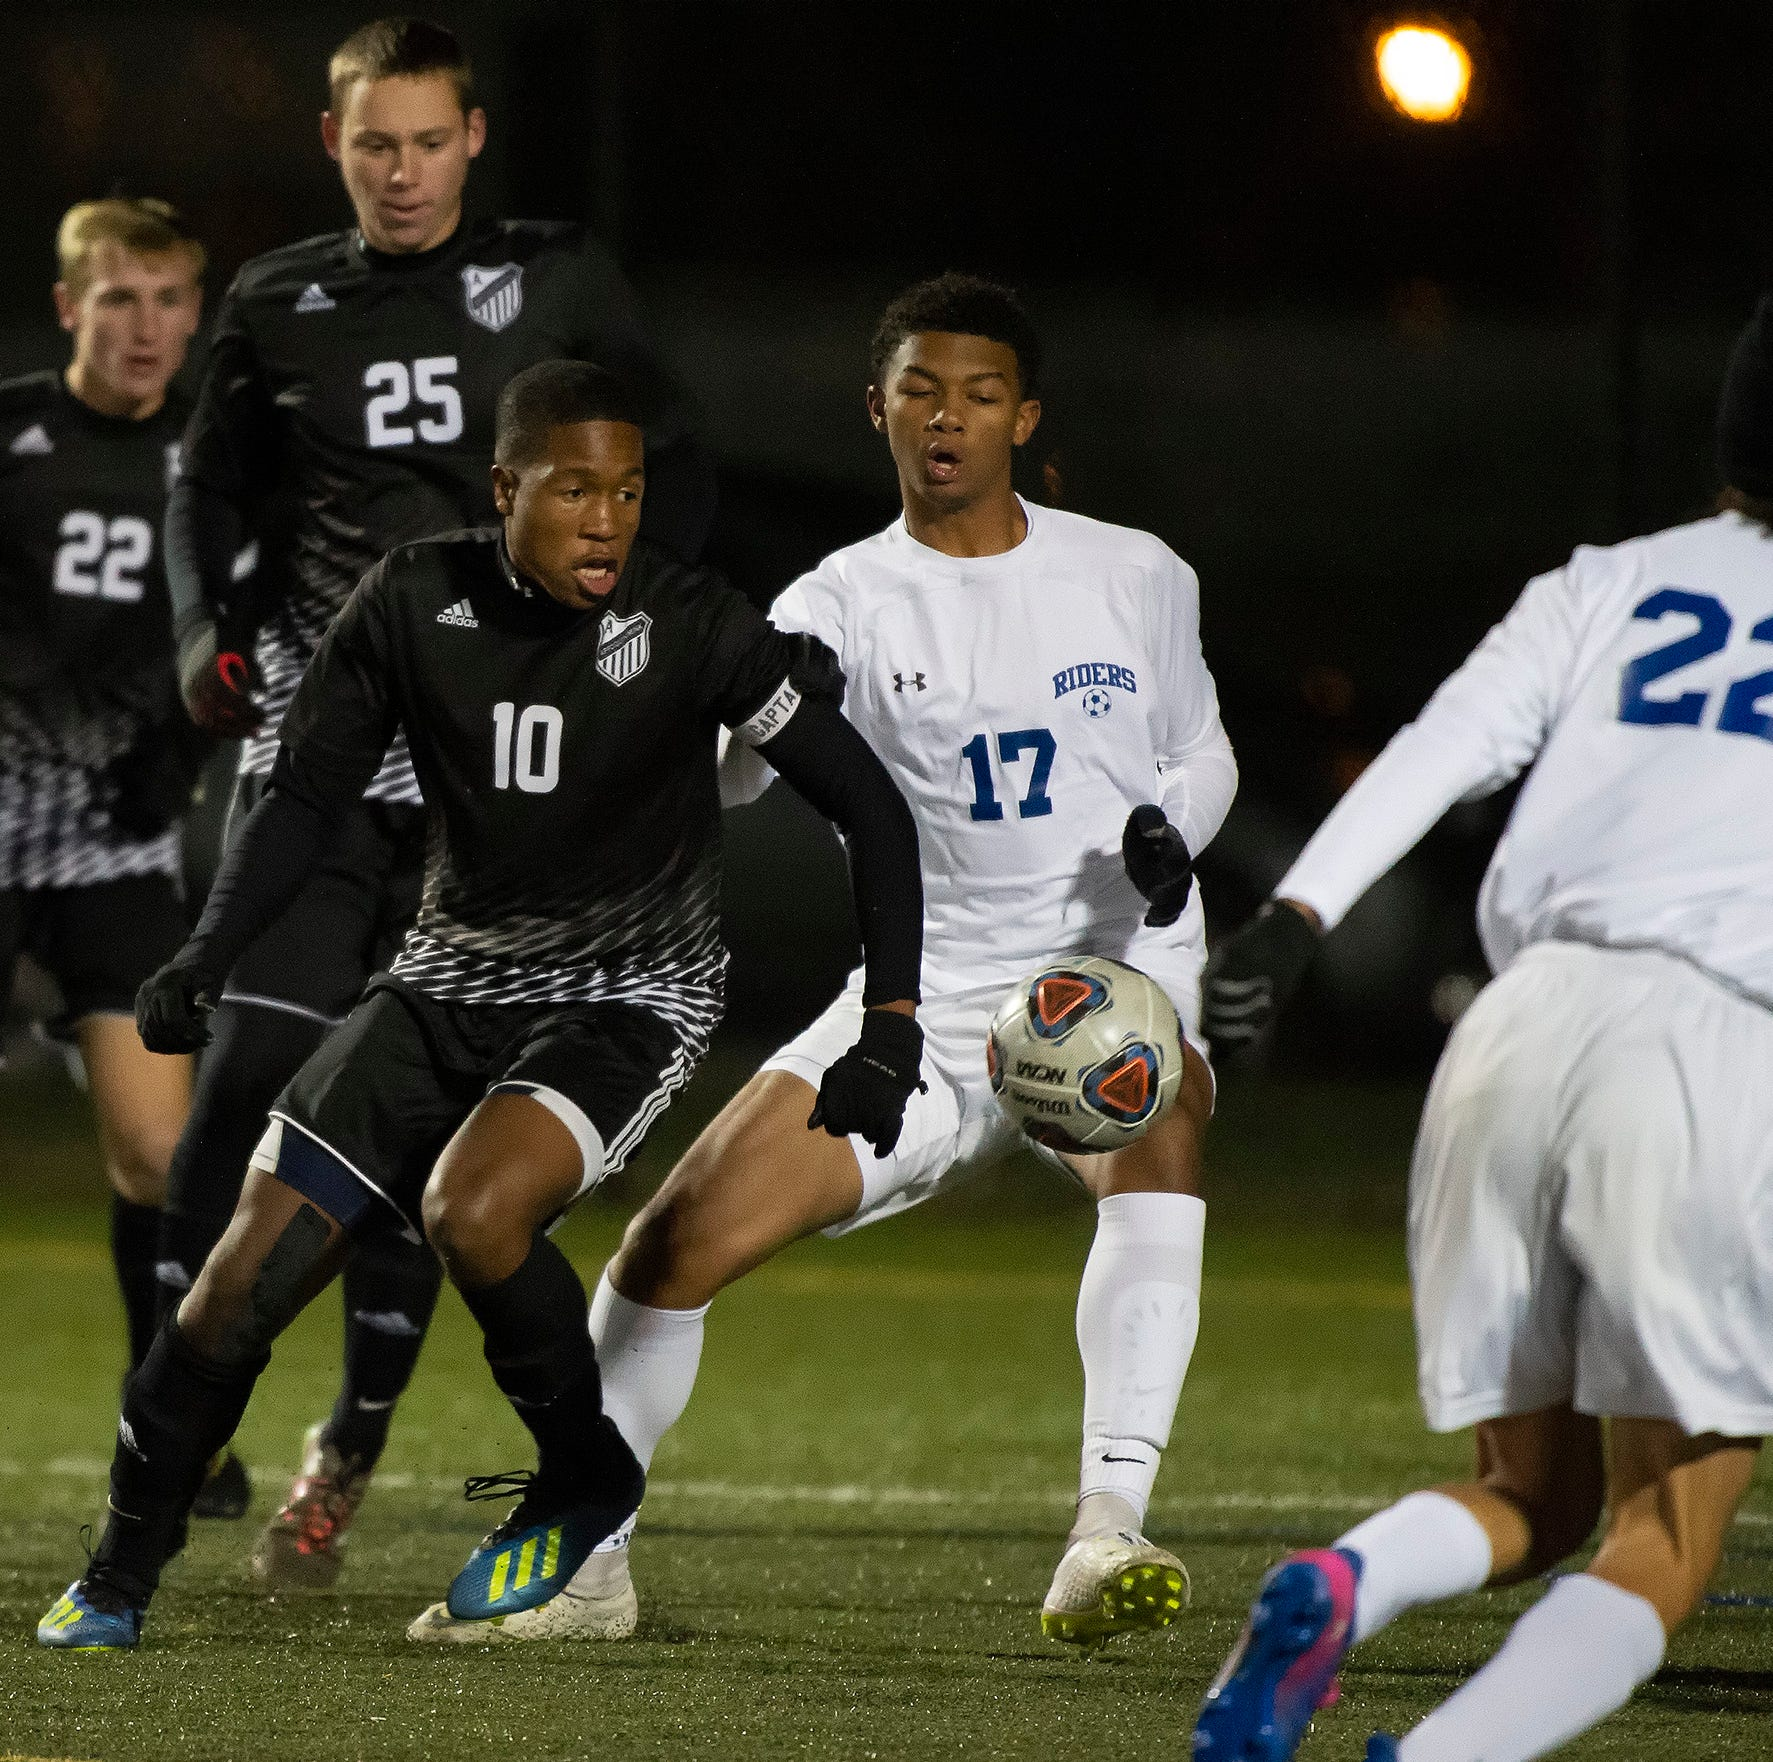 Appoquinimink outlasts CR, will meet Salesianum in DIAA Division I boys soccer final